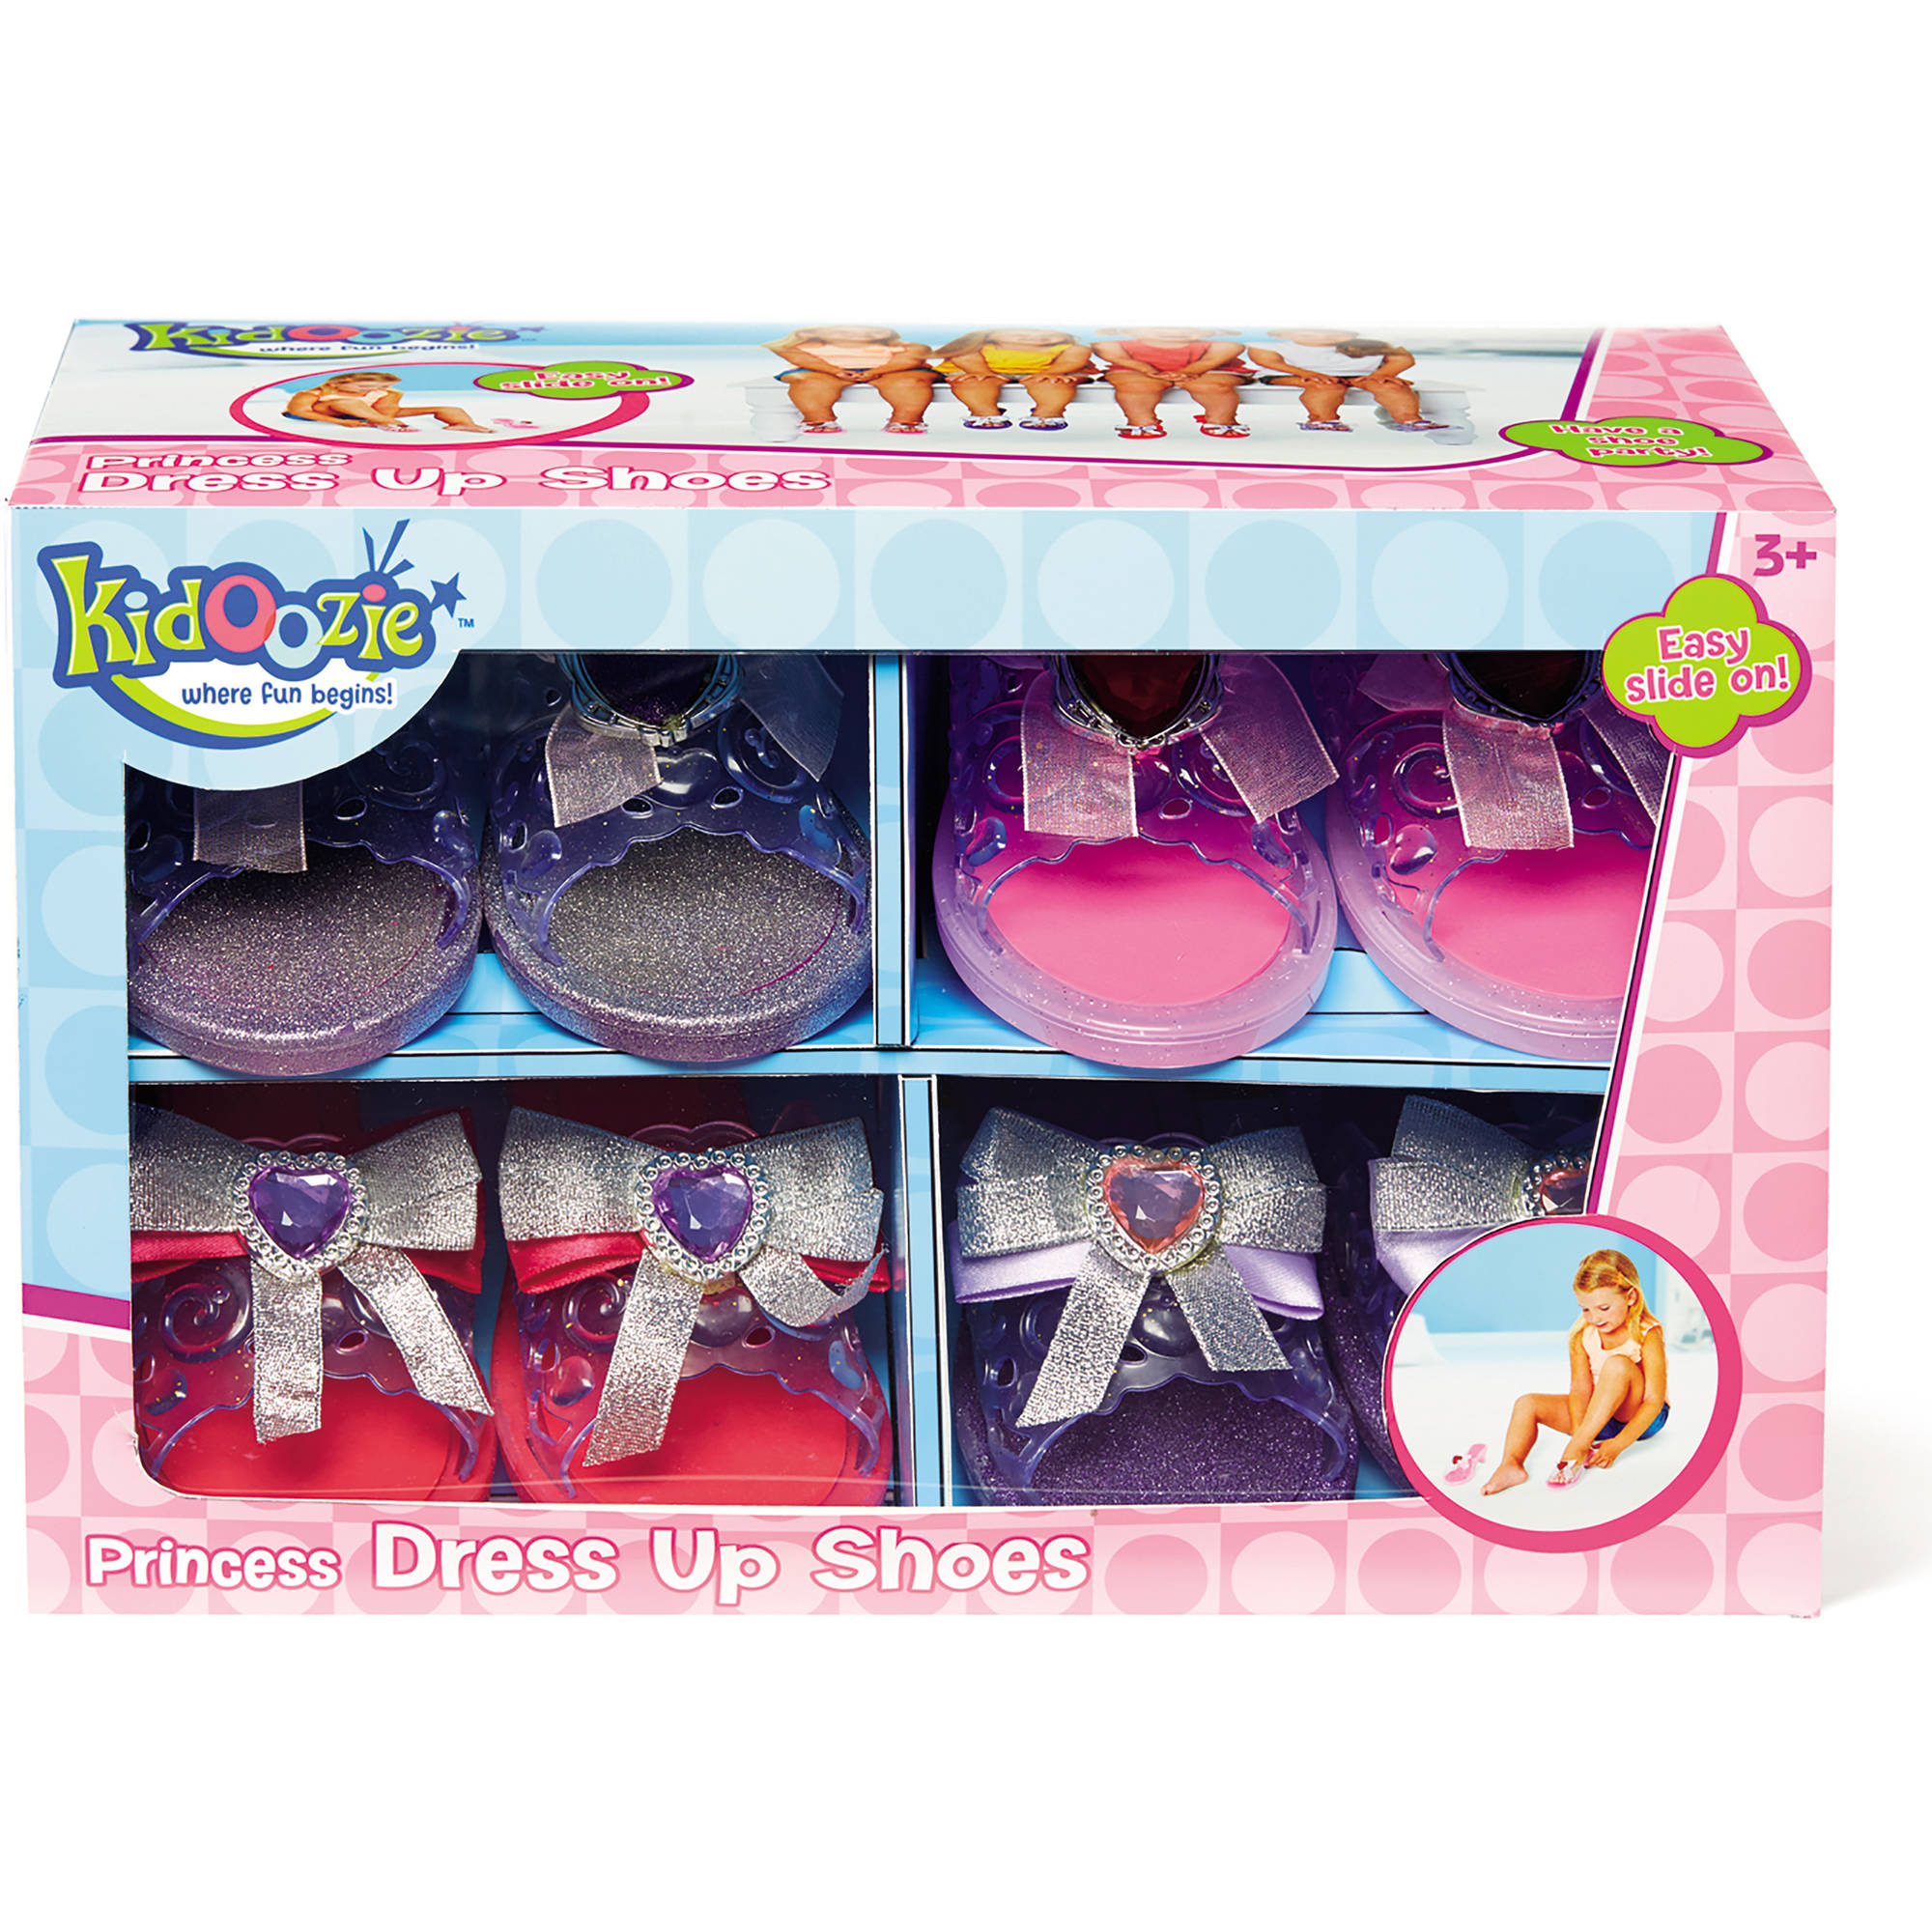 Kidoozie Princess Dress Up Shoes